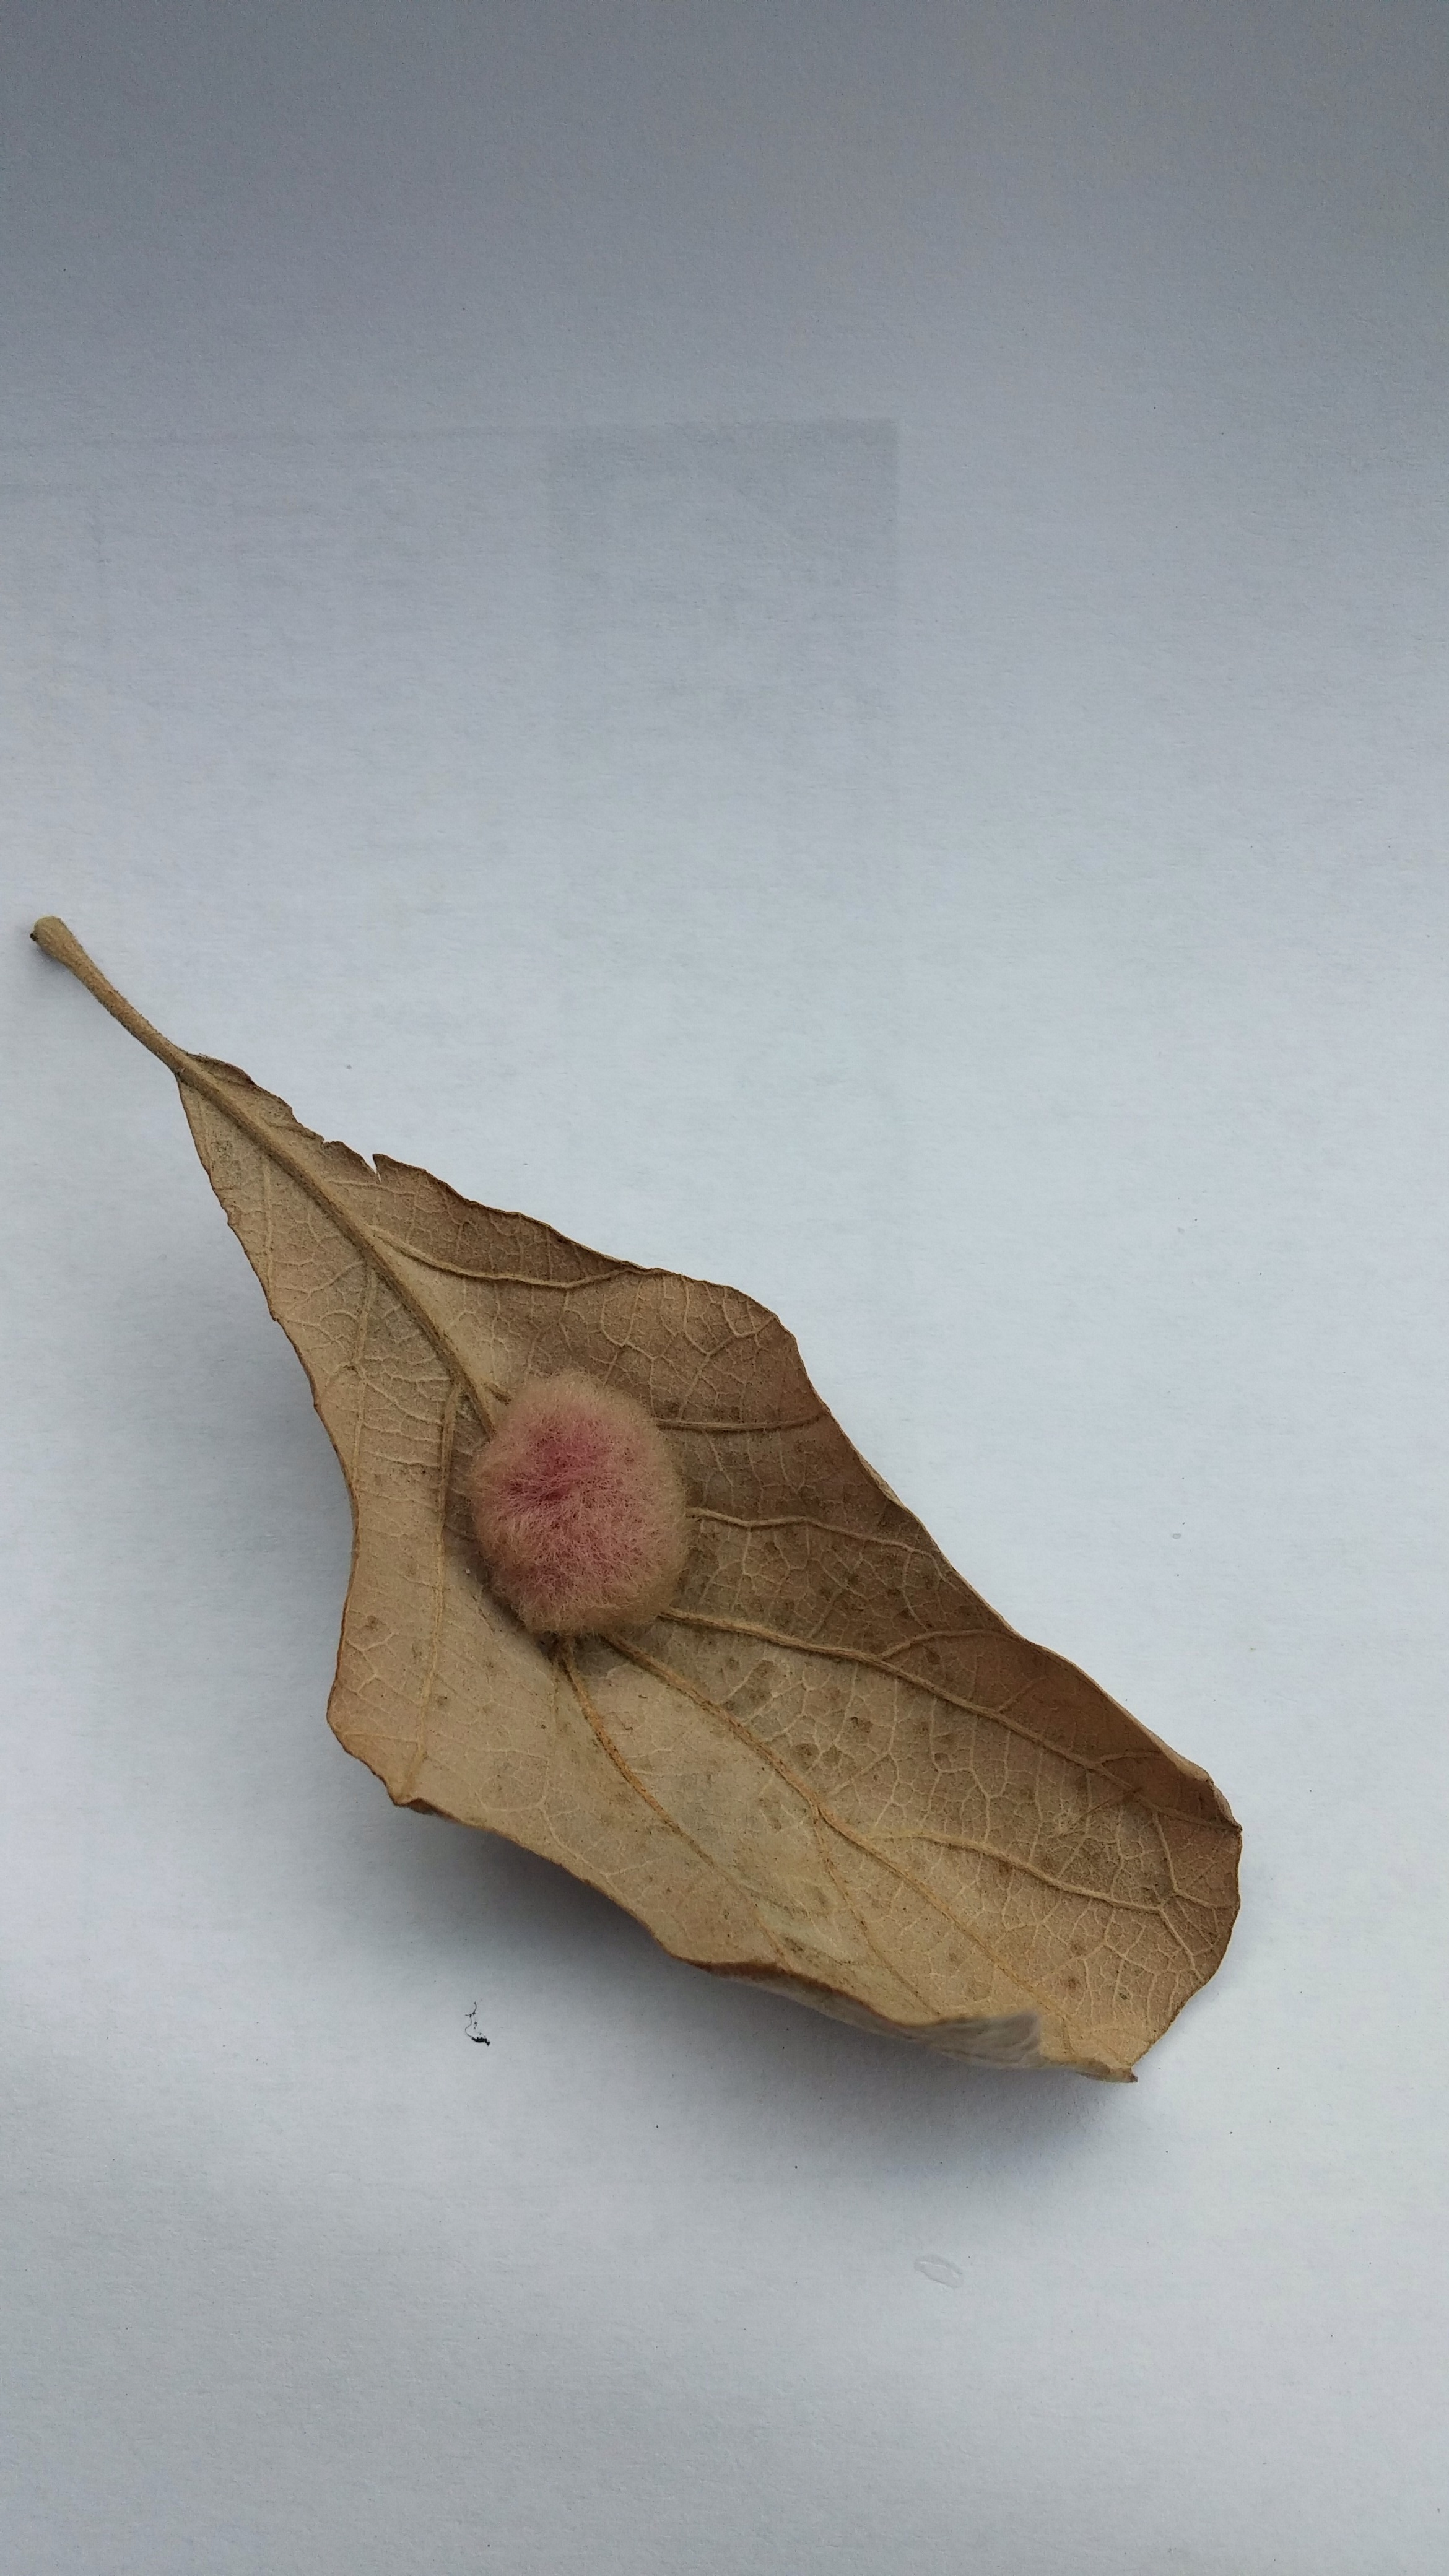 It's a hedgehog gall that shows up on the leaves of white oaks. It's cosmetic, not lethal. Inside the gall, a tiny wasp is developing.